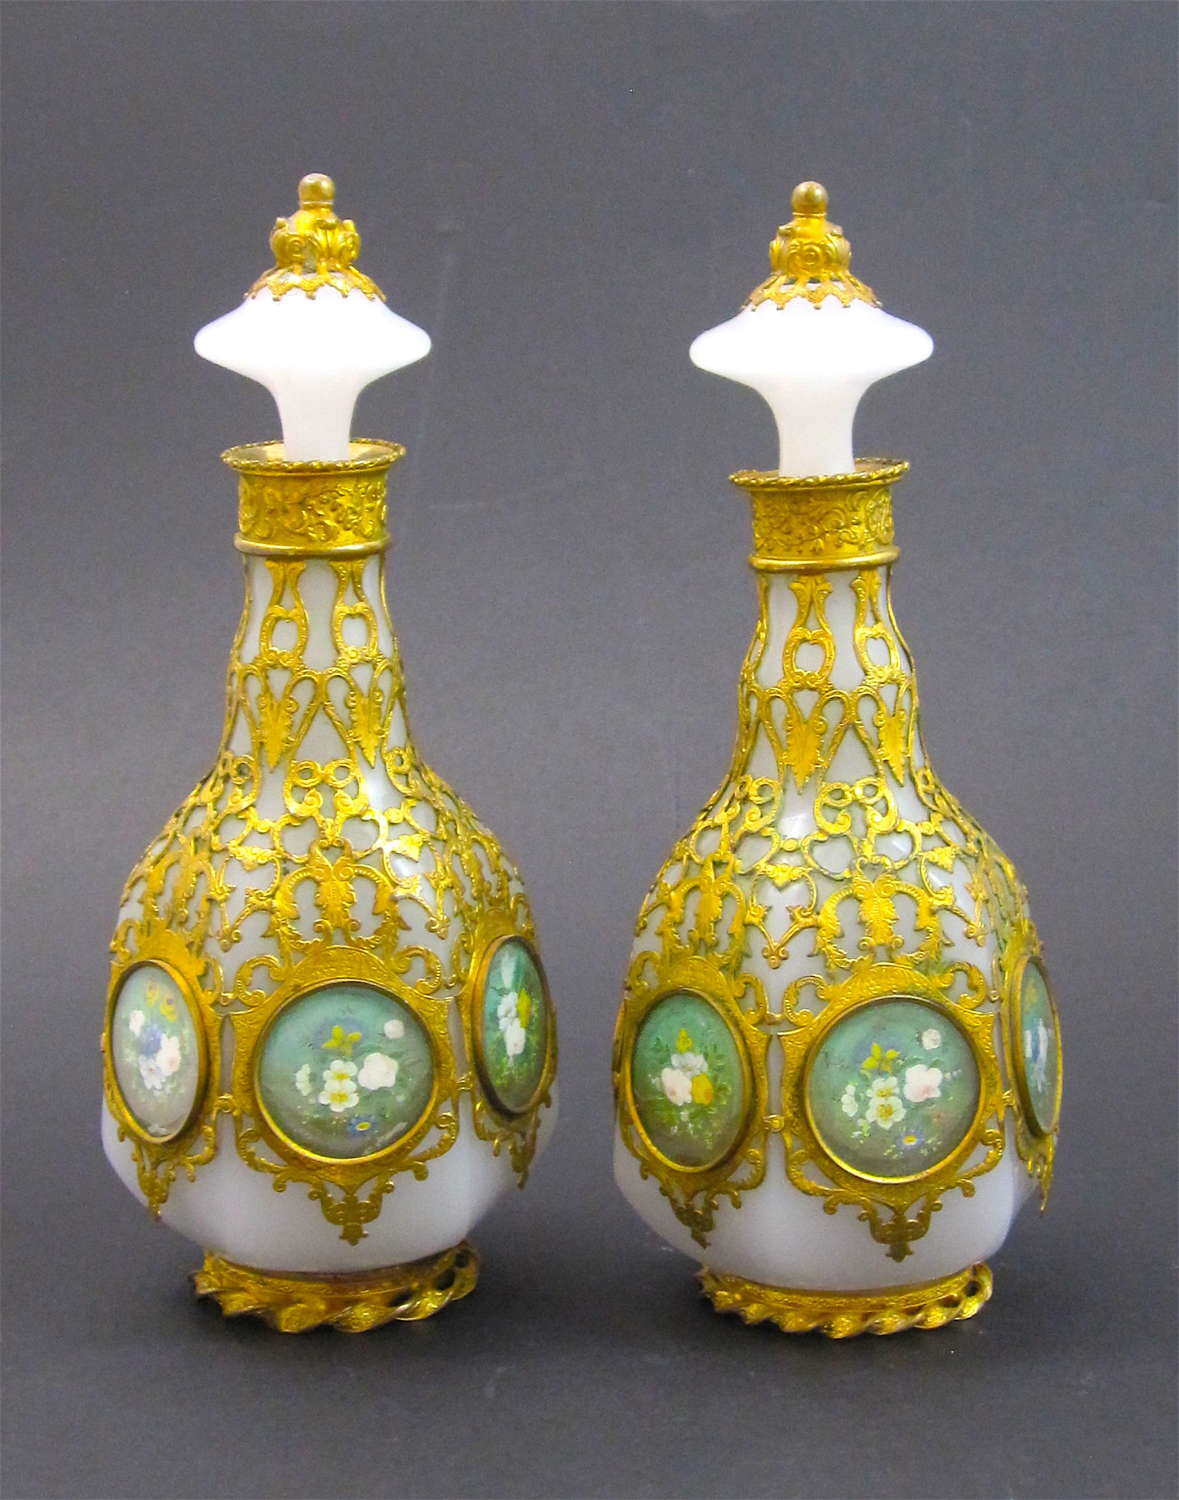 Pair of Unusual Palais Royal Opaline Glass Perfume Bottles